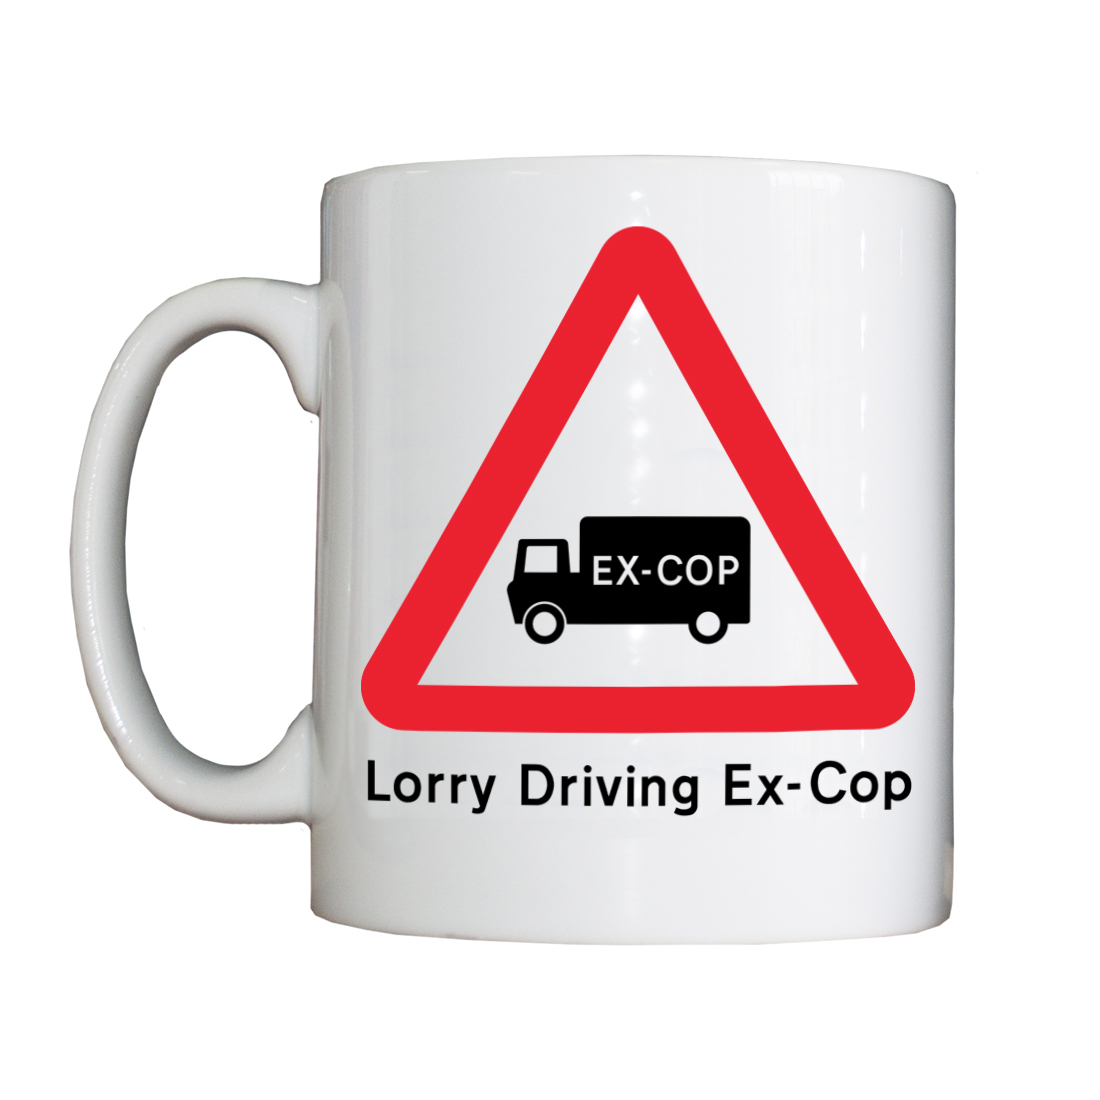 Personalised 'Lorry Driving Ex-Cop' Drinking Vessel LorryDrivingExCopVessel